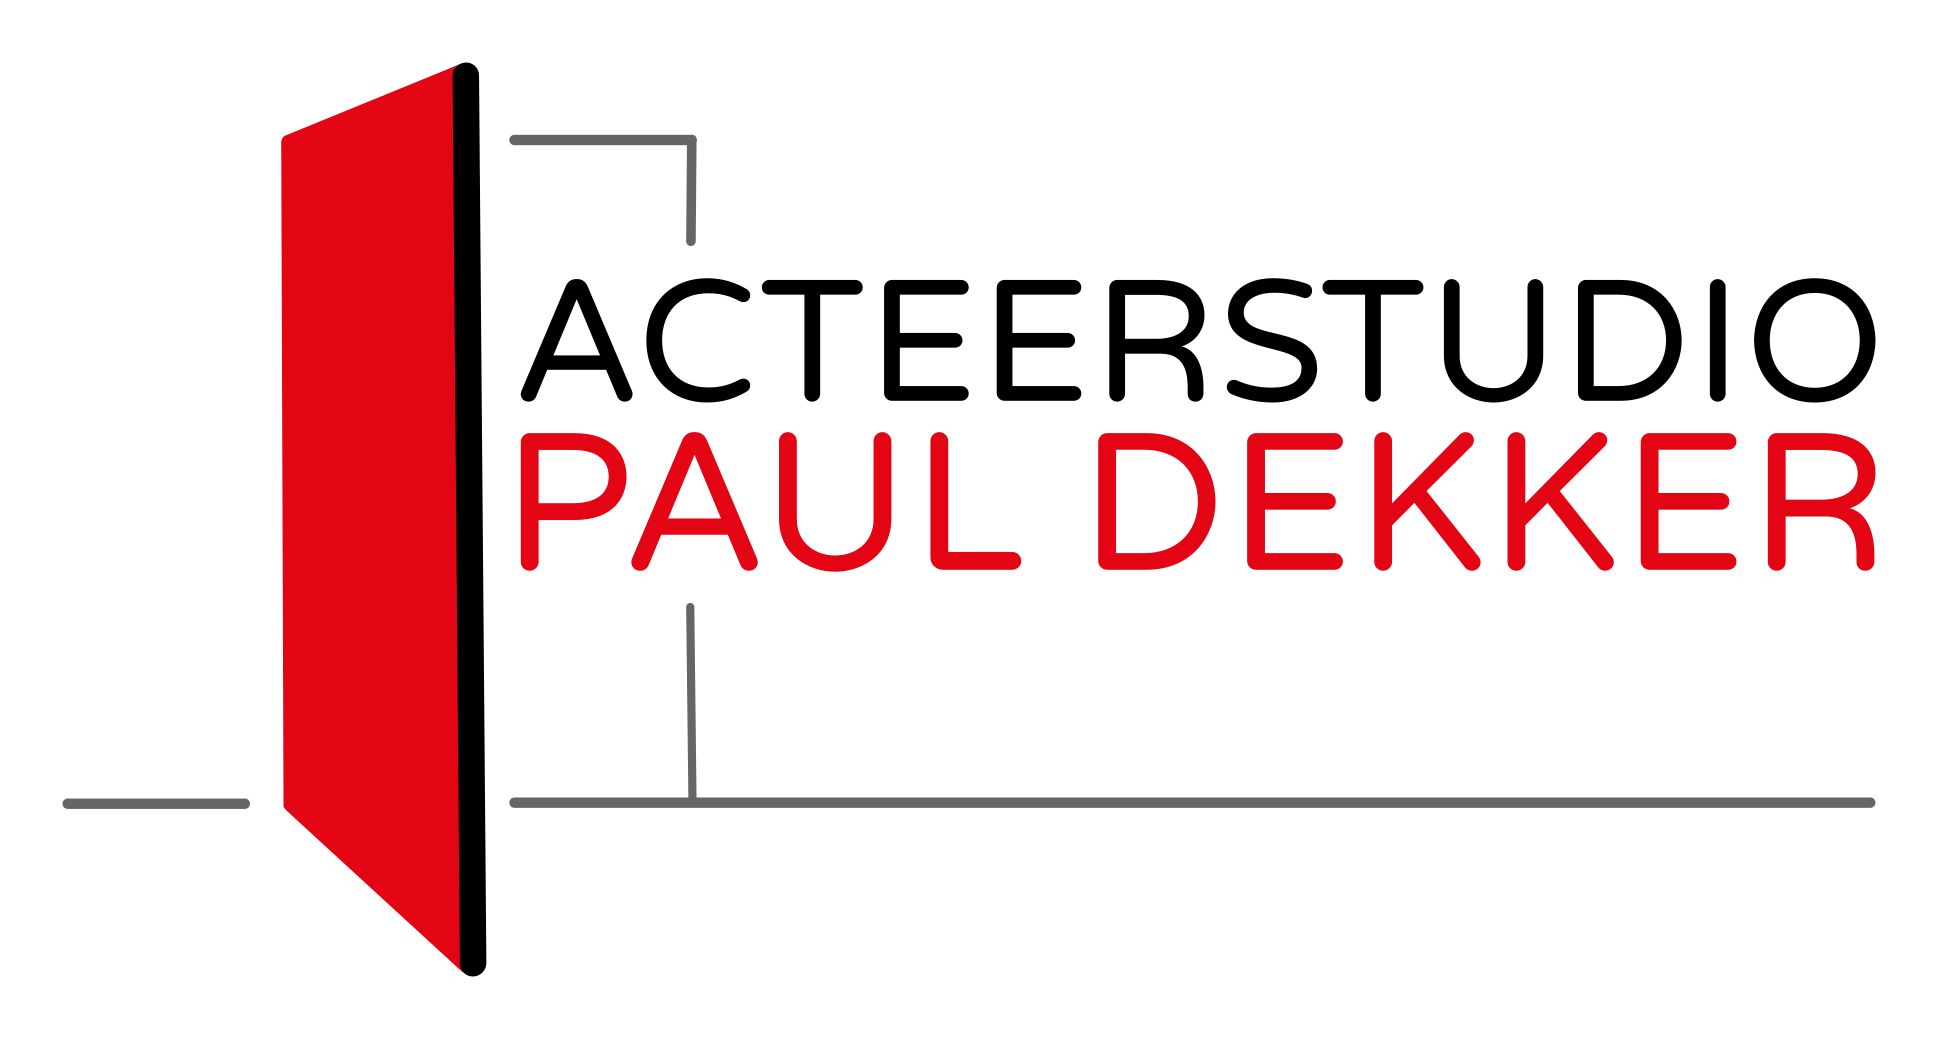 Acteerstudio Paul Dekker